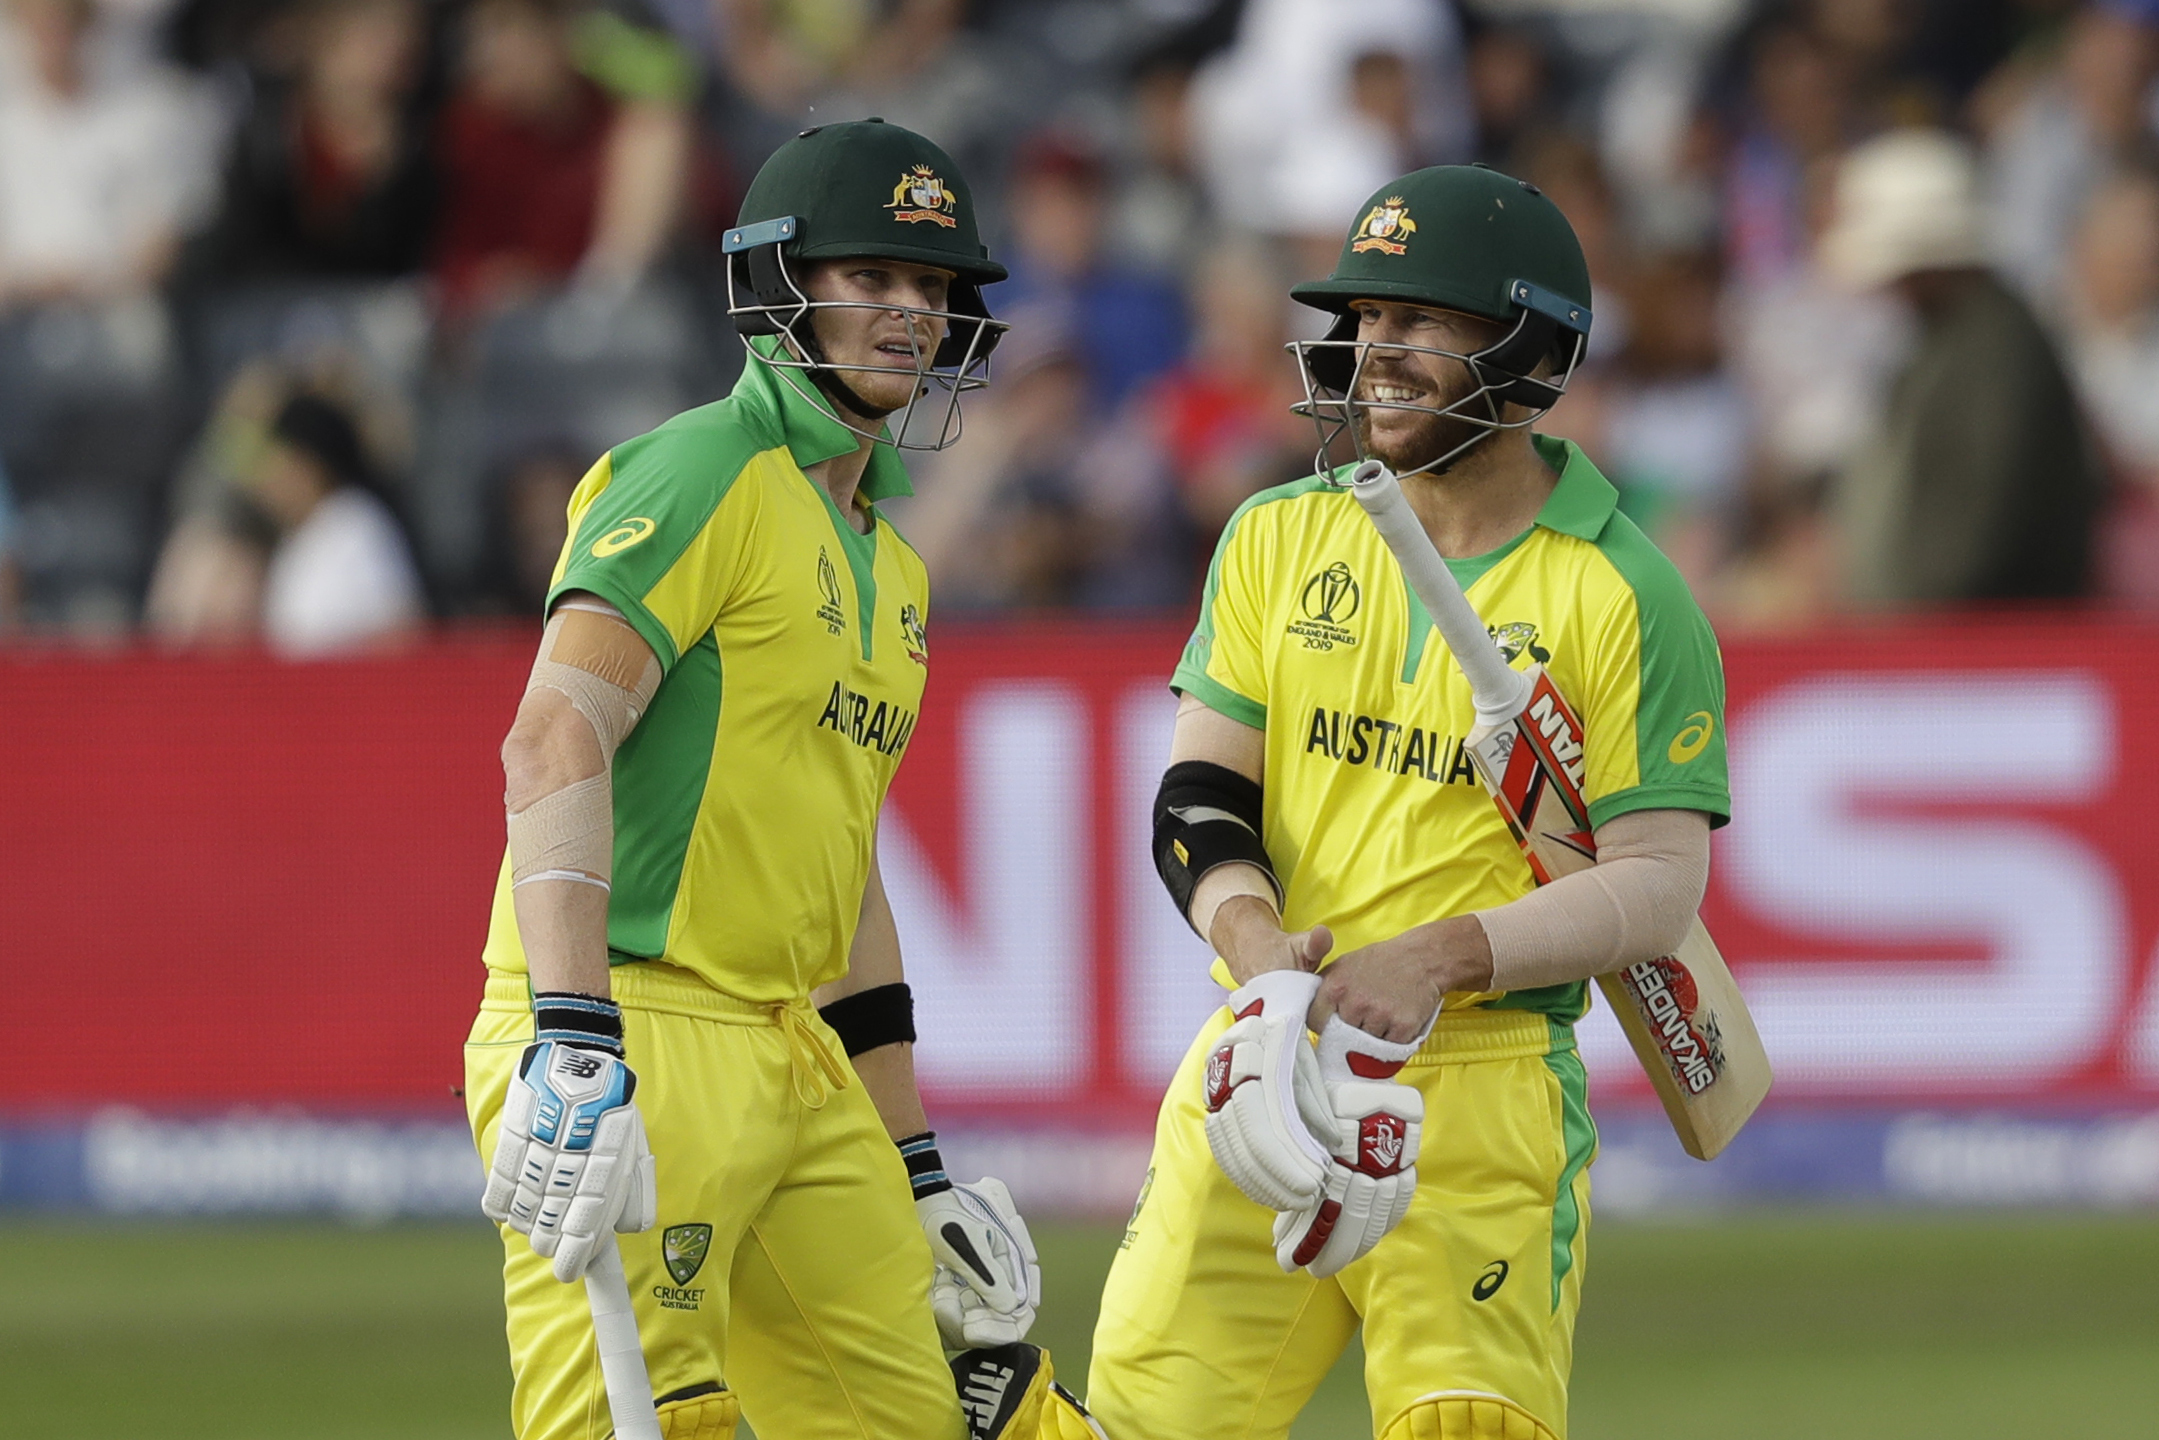 Australia's Steve Smith (left) and David Warner chat after their first batting over against Afghanistan at the Bristol County Ground  on June 1.